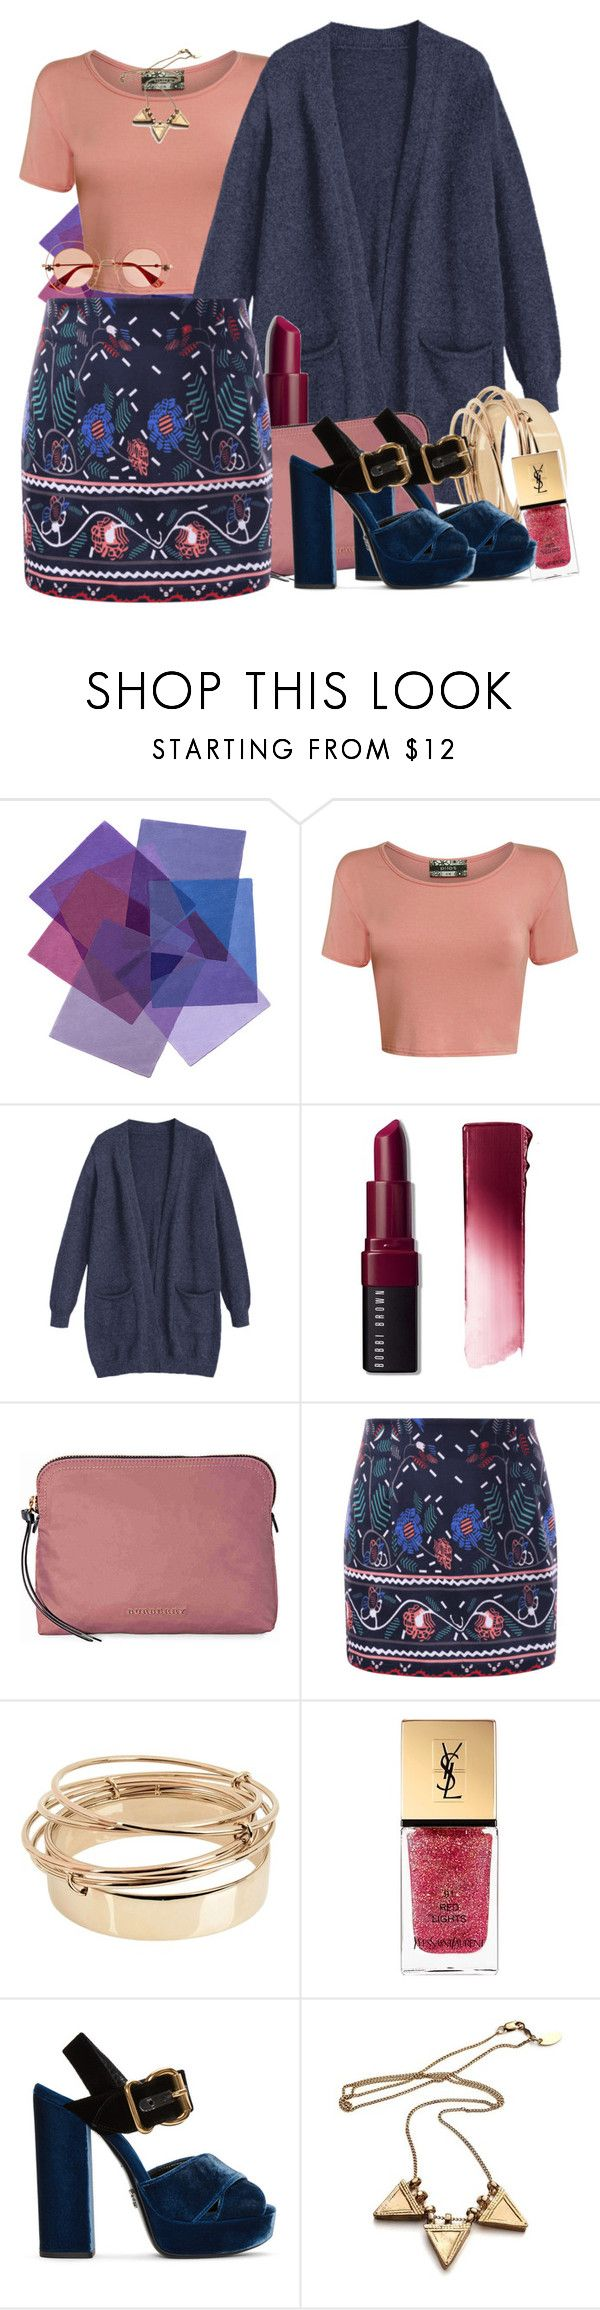 """""""rosa saturo"""" by spiceandsugar ❤ liked on Polyvore featuring Pilot, Bobbi Brown Cosmetics, Burberry, Valentino, Yves Saint Laurent, Prada and Gucci"""